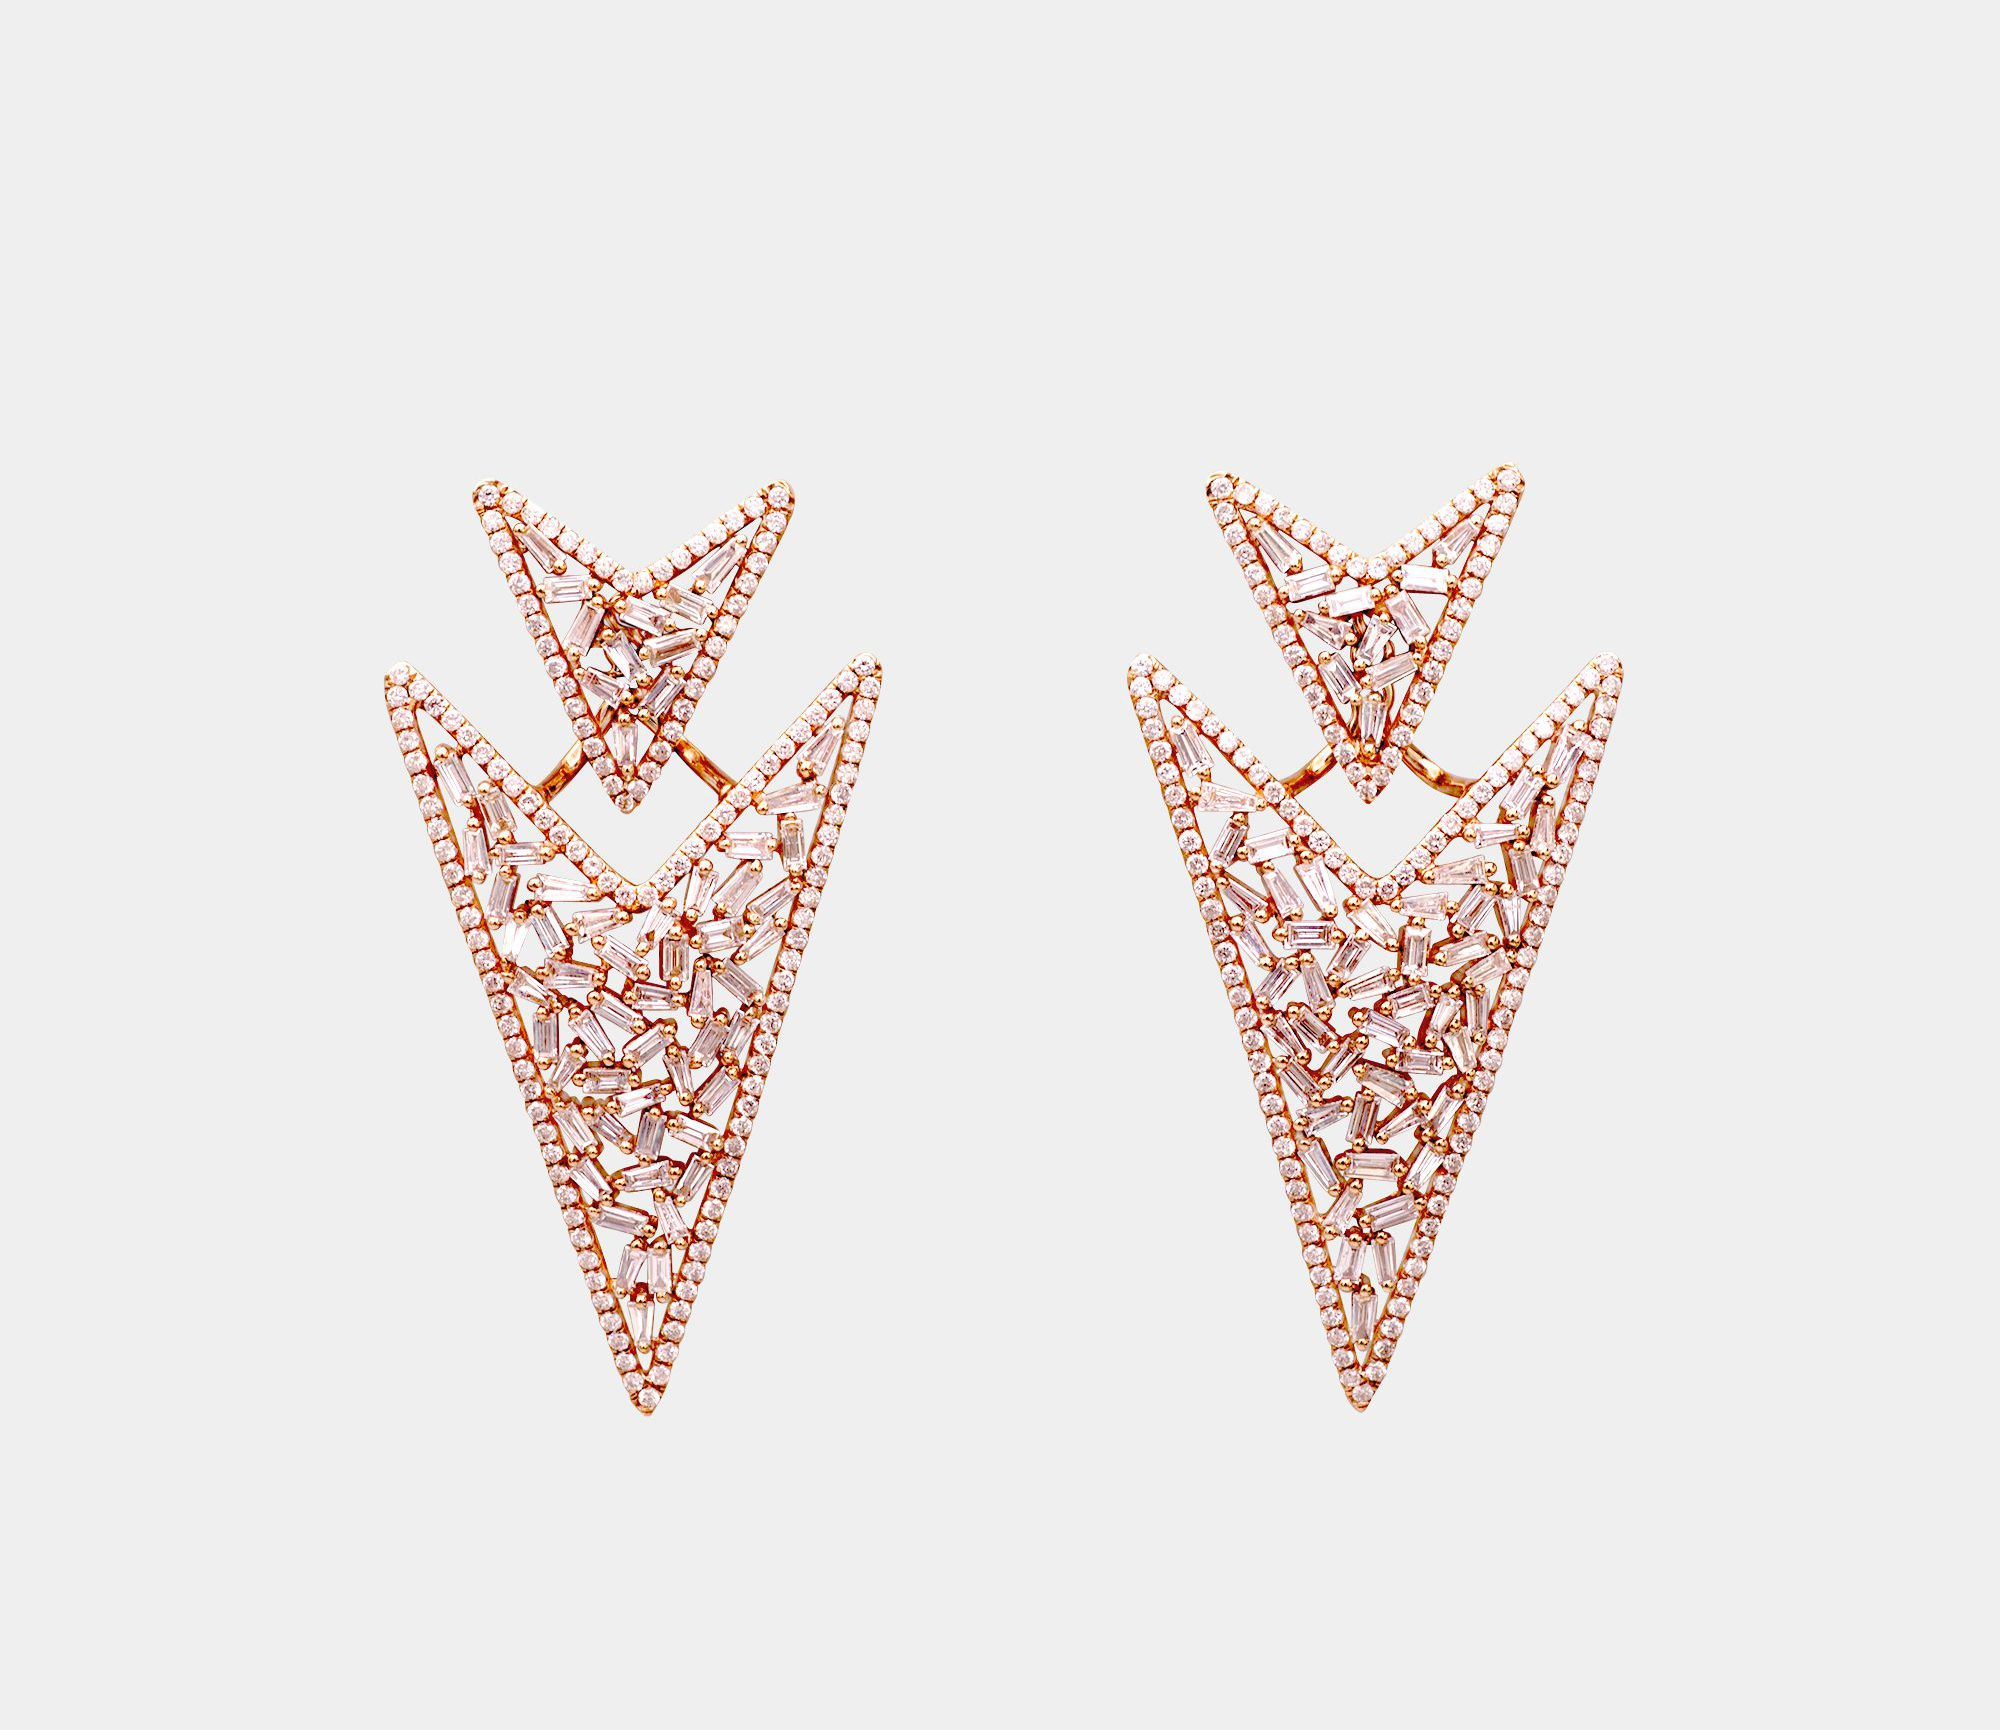 Accacia Arrow Head Rose Gold Diamond Earrings Pheres